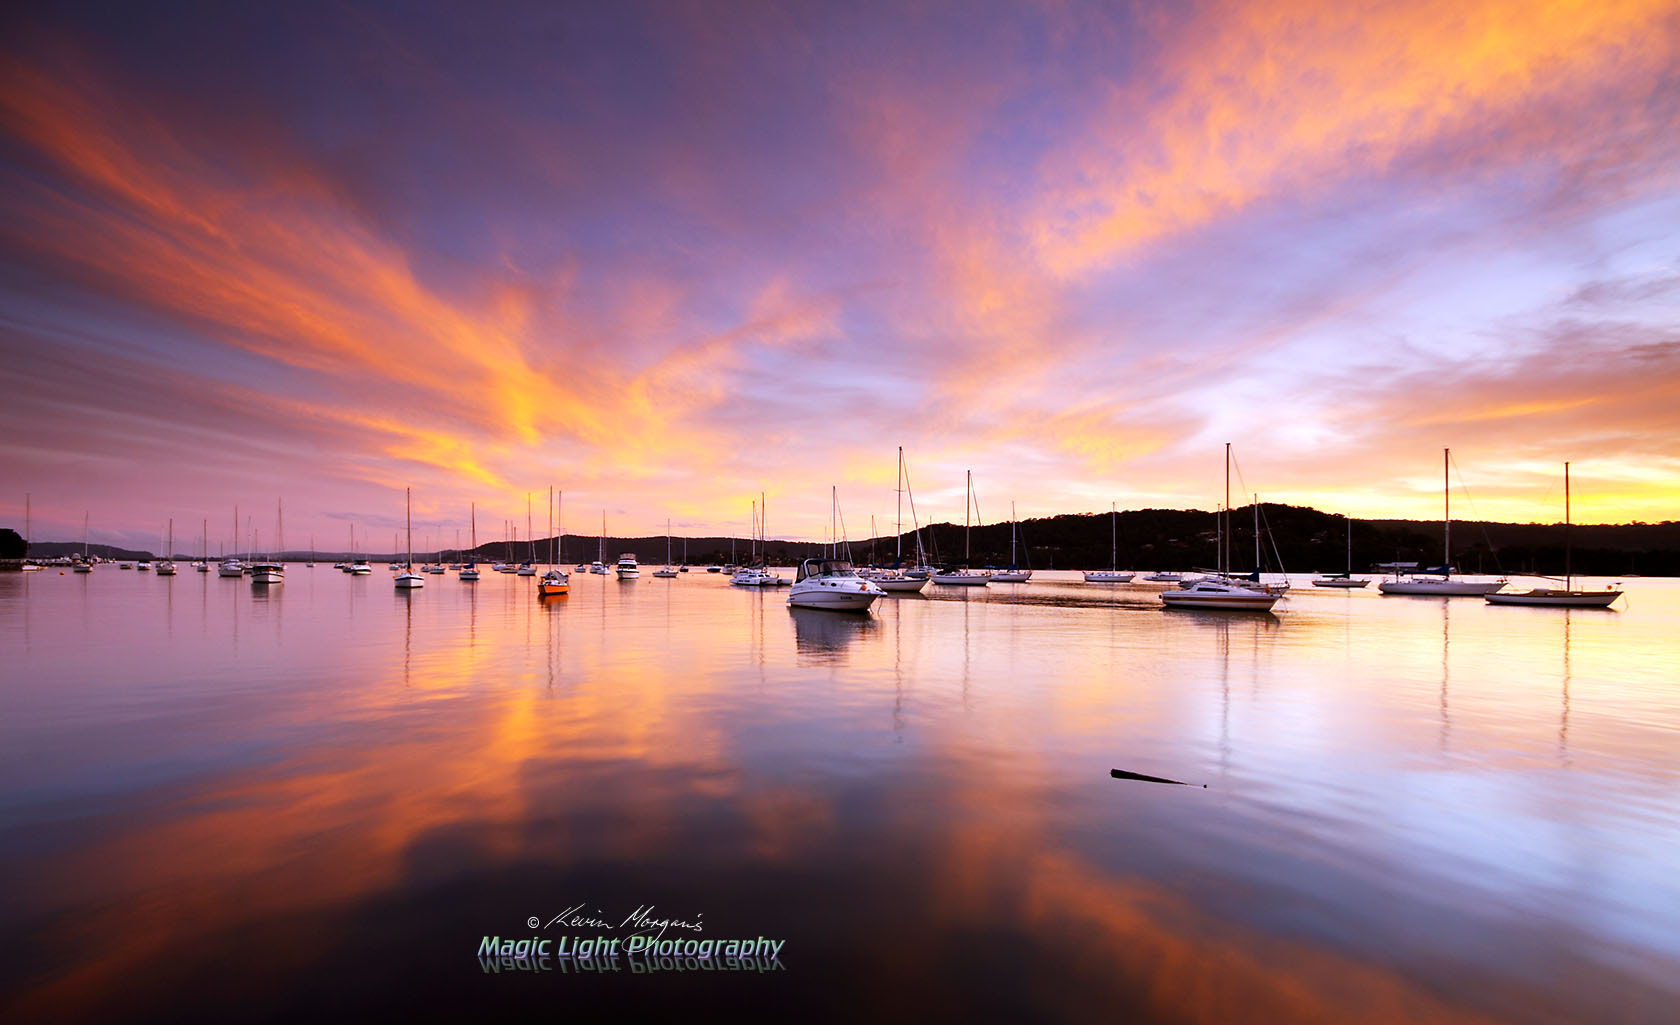 Photograph Sunset at Gosford Sailing Club by Kevin Morgan on 500px